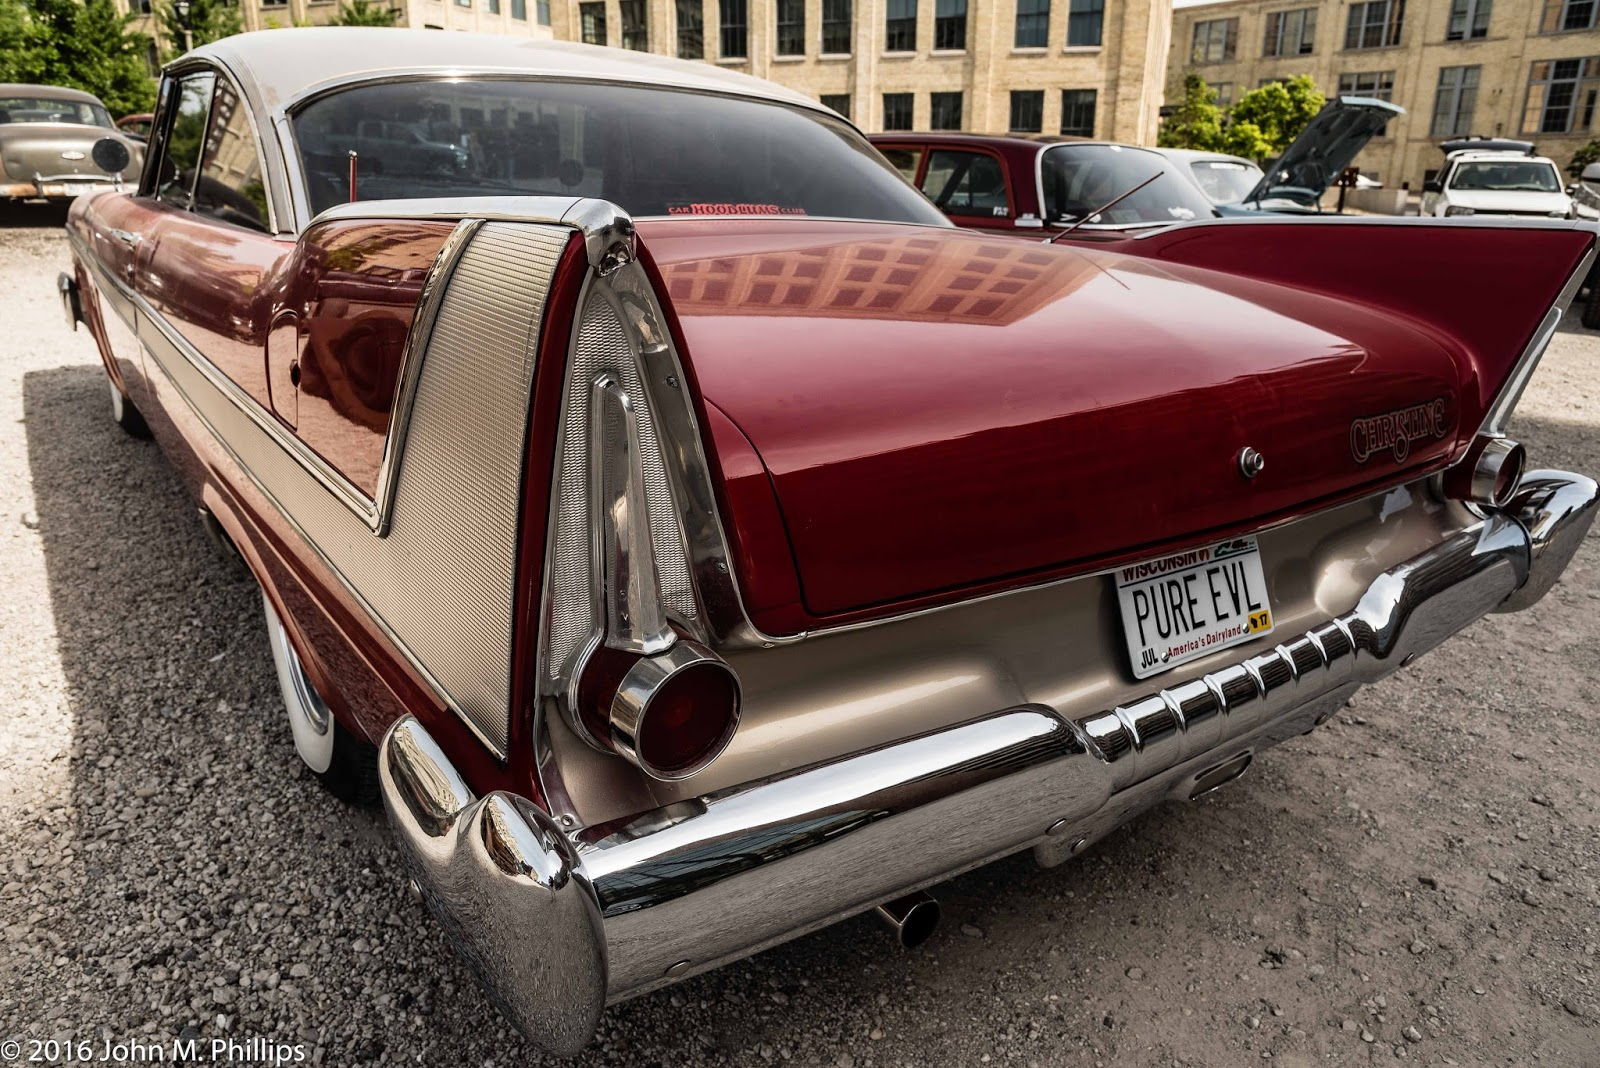 Skeptic Photo Serendipitous Classic Car Rally 1950s Chrysler Cars The Distinctive Features Of This As With All Corporation Late Were Iconic Fins So Here My Goal Was To Emphasize